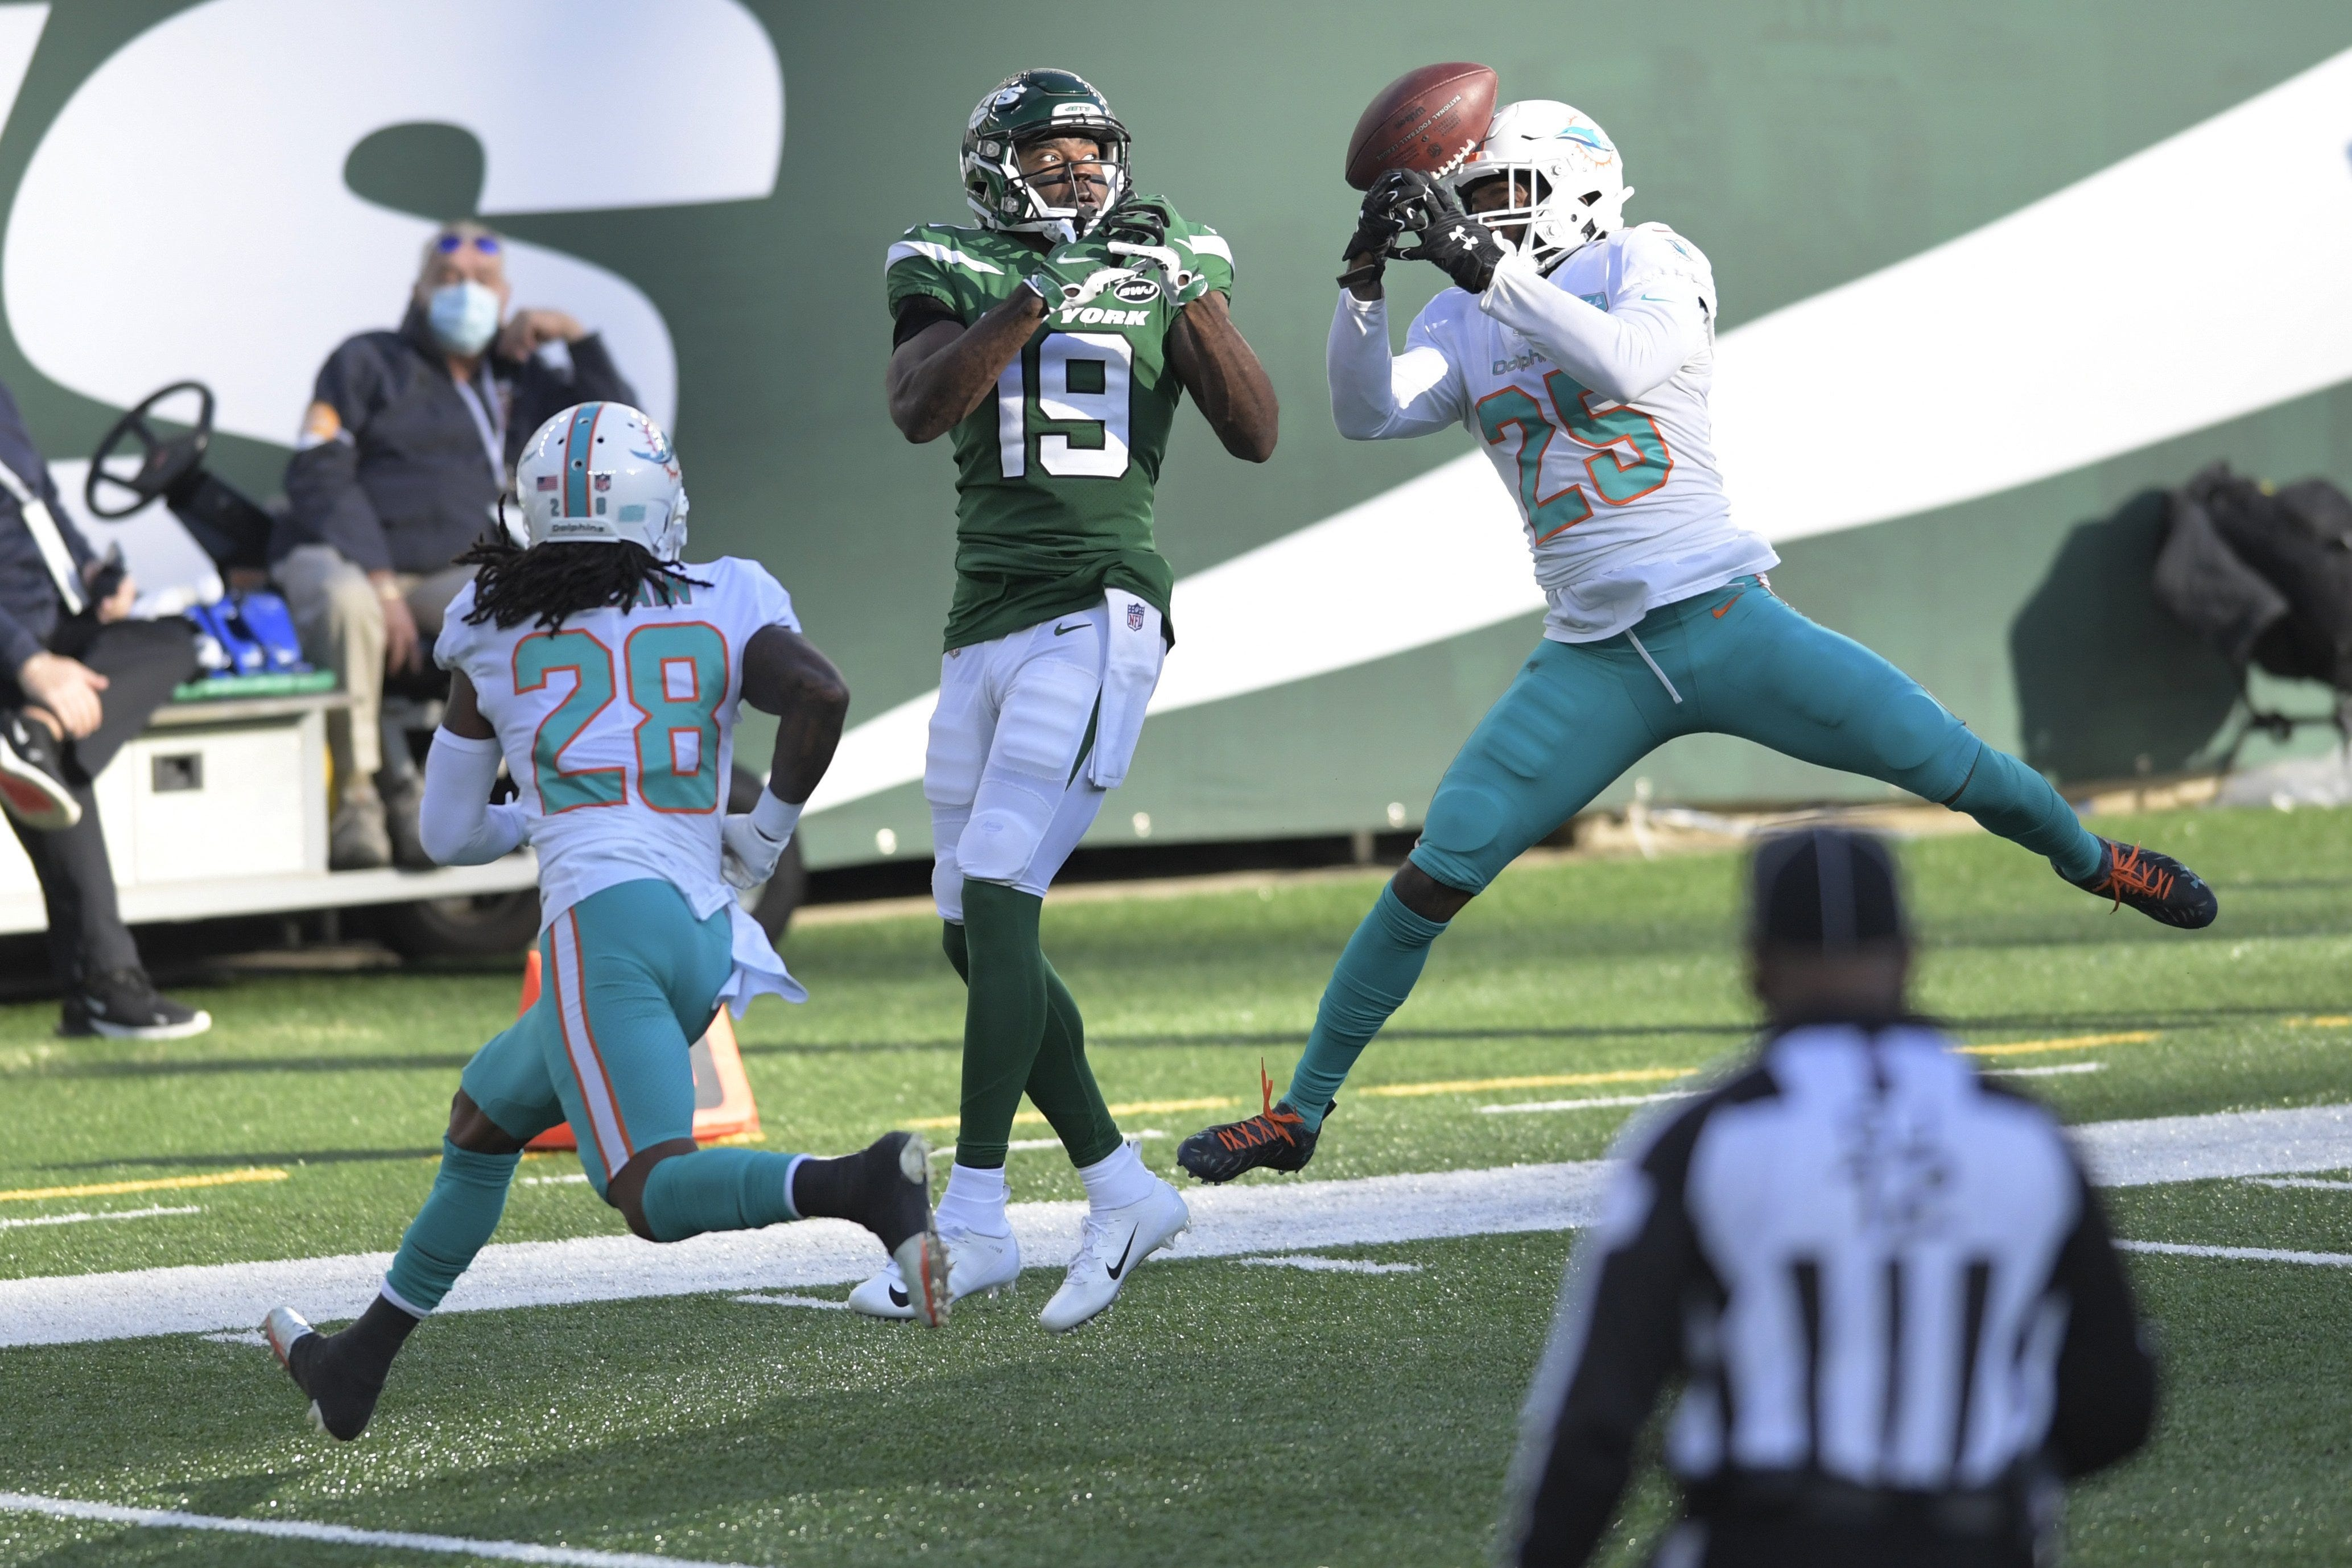 The Tape Don T Lie Miami Dolphins Xavien Howard Beat Jets A Review Submit a tip or combo. the tape don t lie miami dolphins